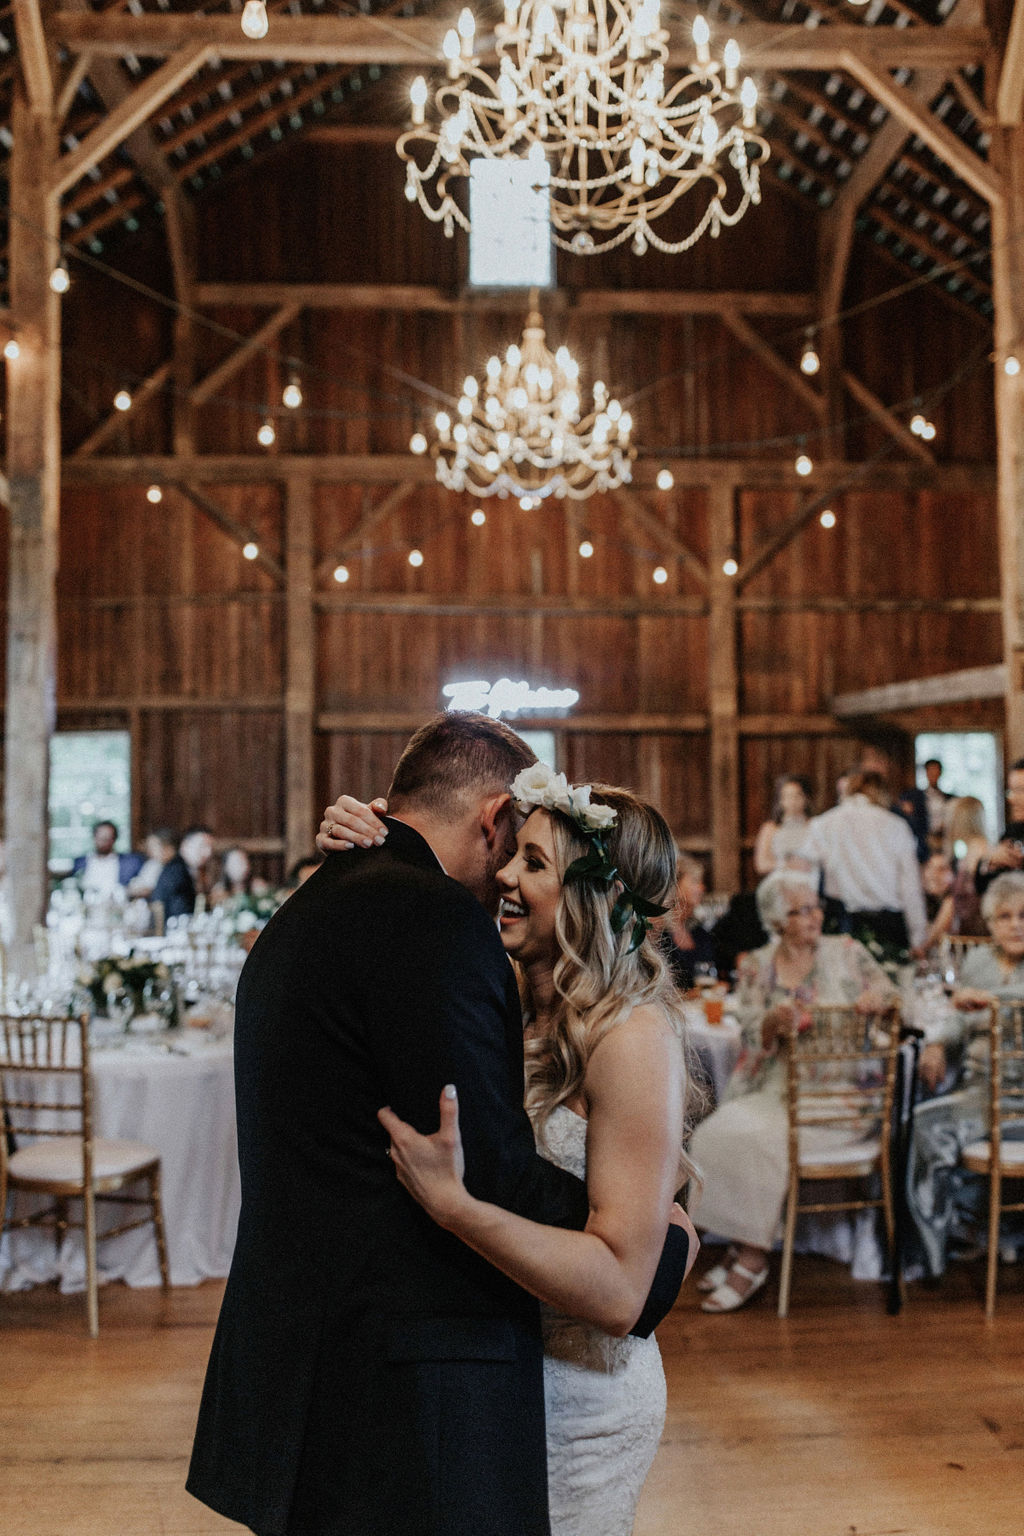 A couple sharing their first dance.